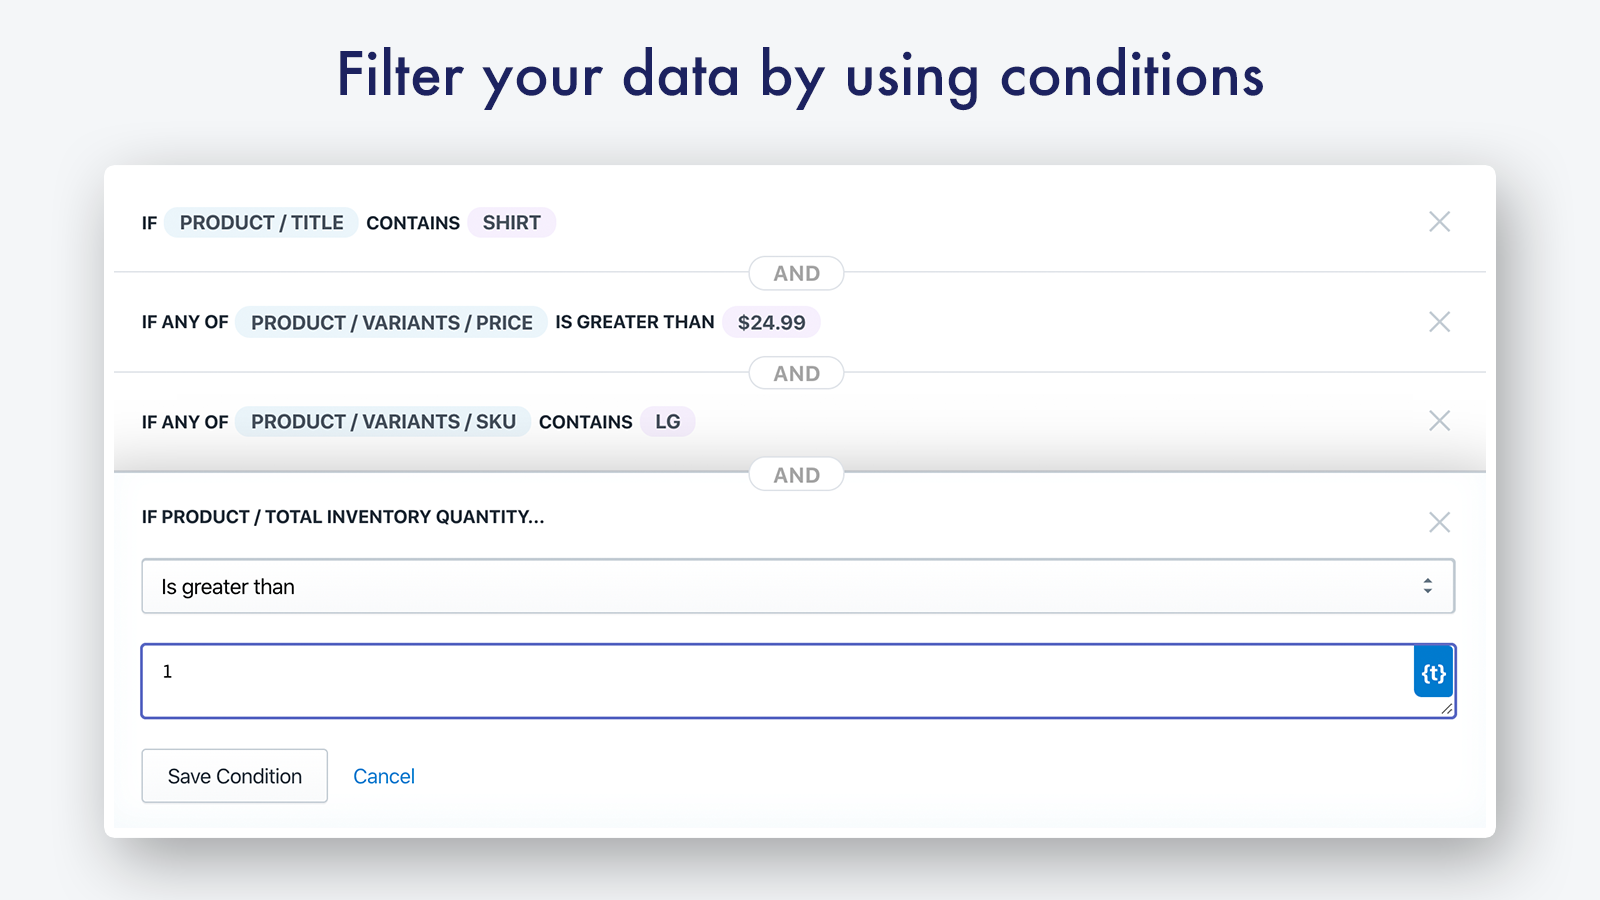 Filter data by using conditions